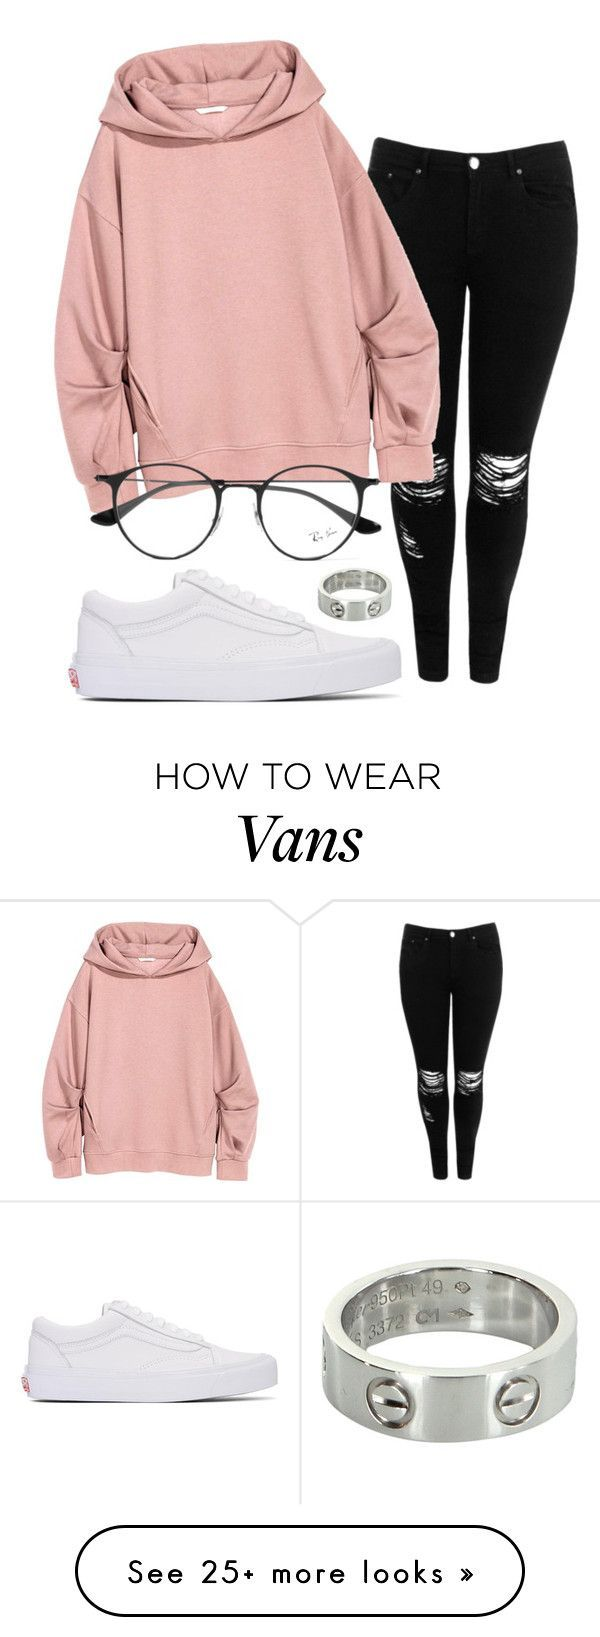 """""""#No name"""" by eemaj on Polyvore featuring Vans, Boohoo, Ray-Ban and Cartier"""